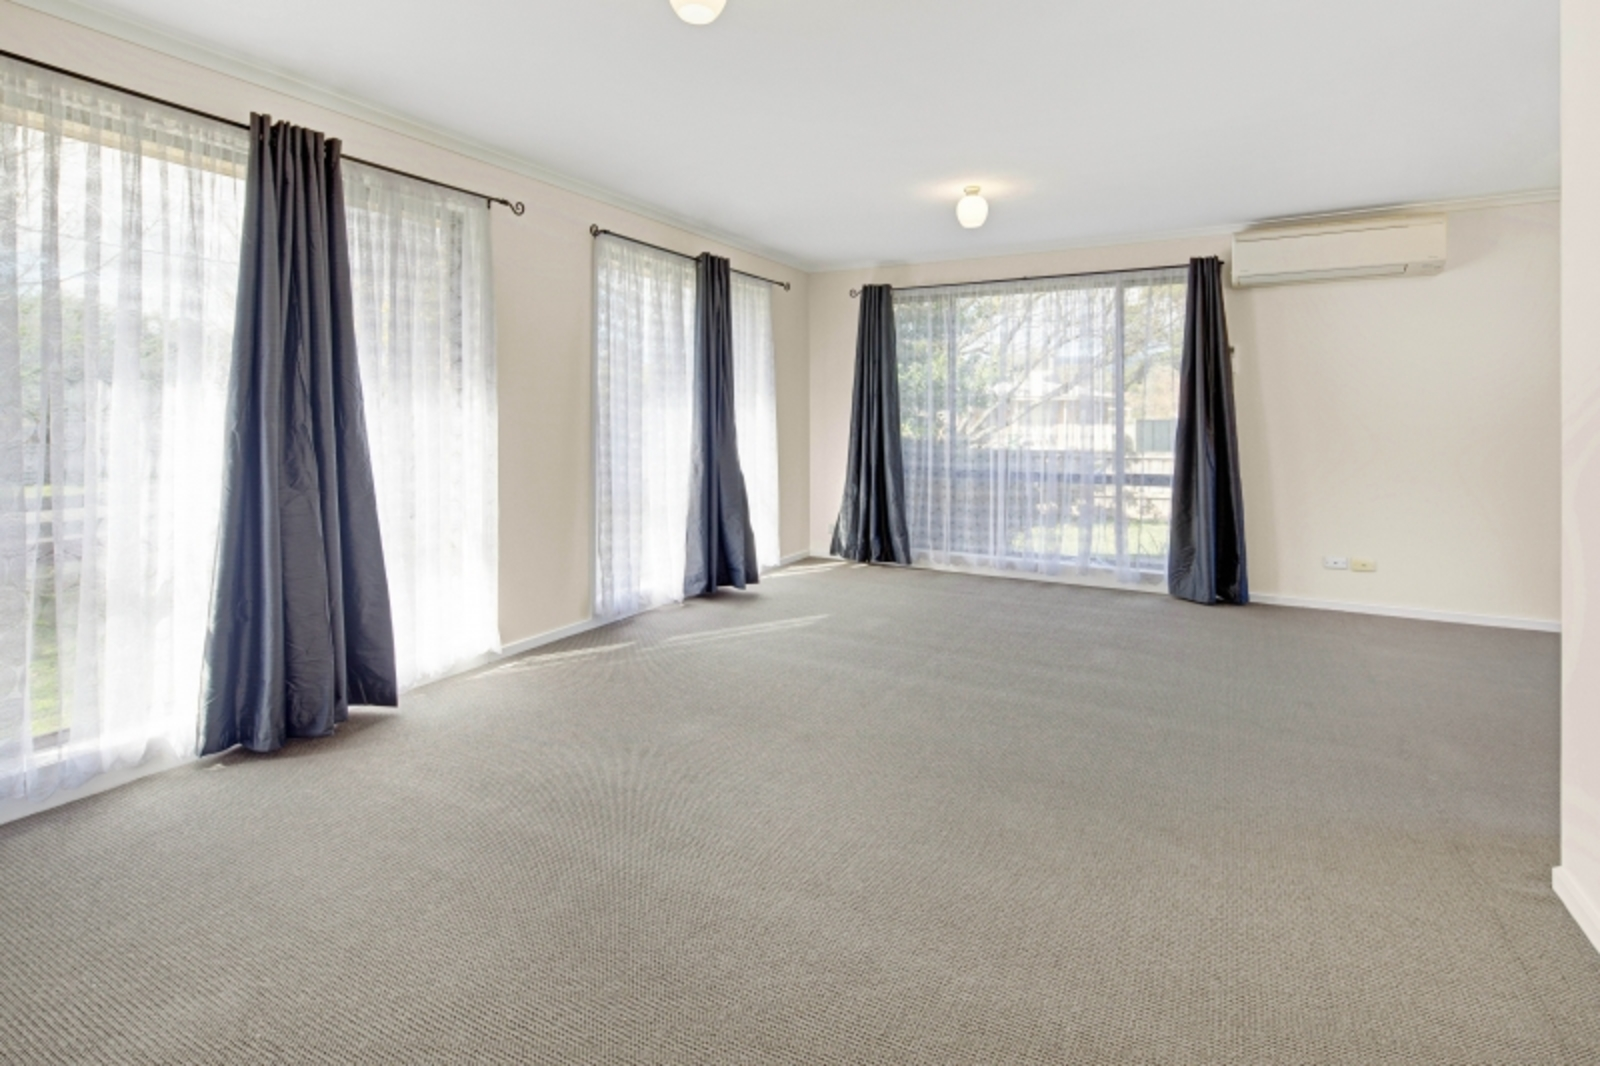 22 Manifold Road, Woodend 3442 - Image 5